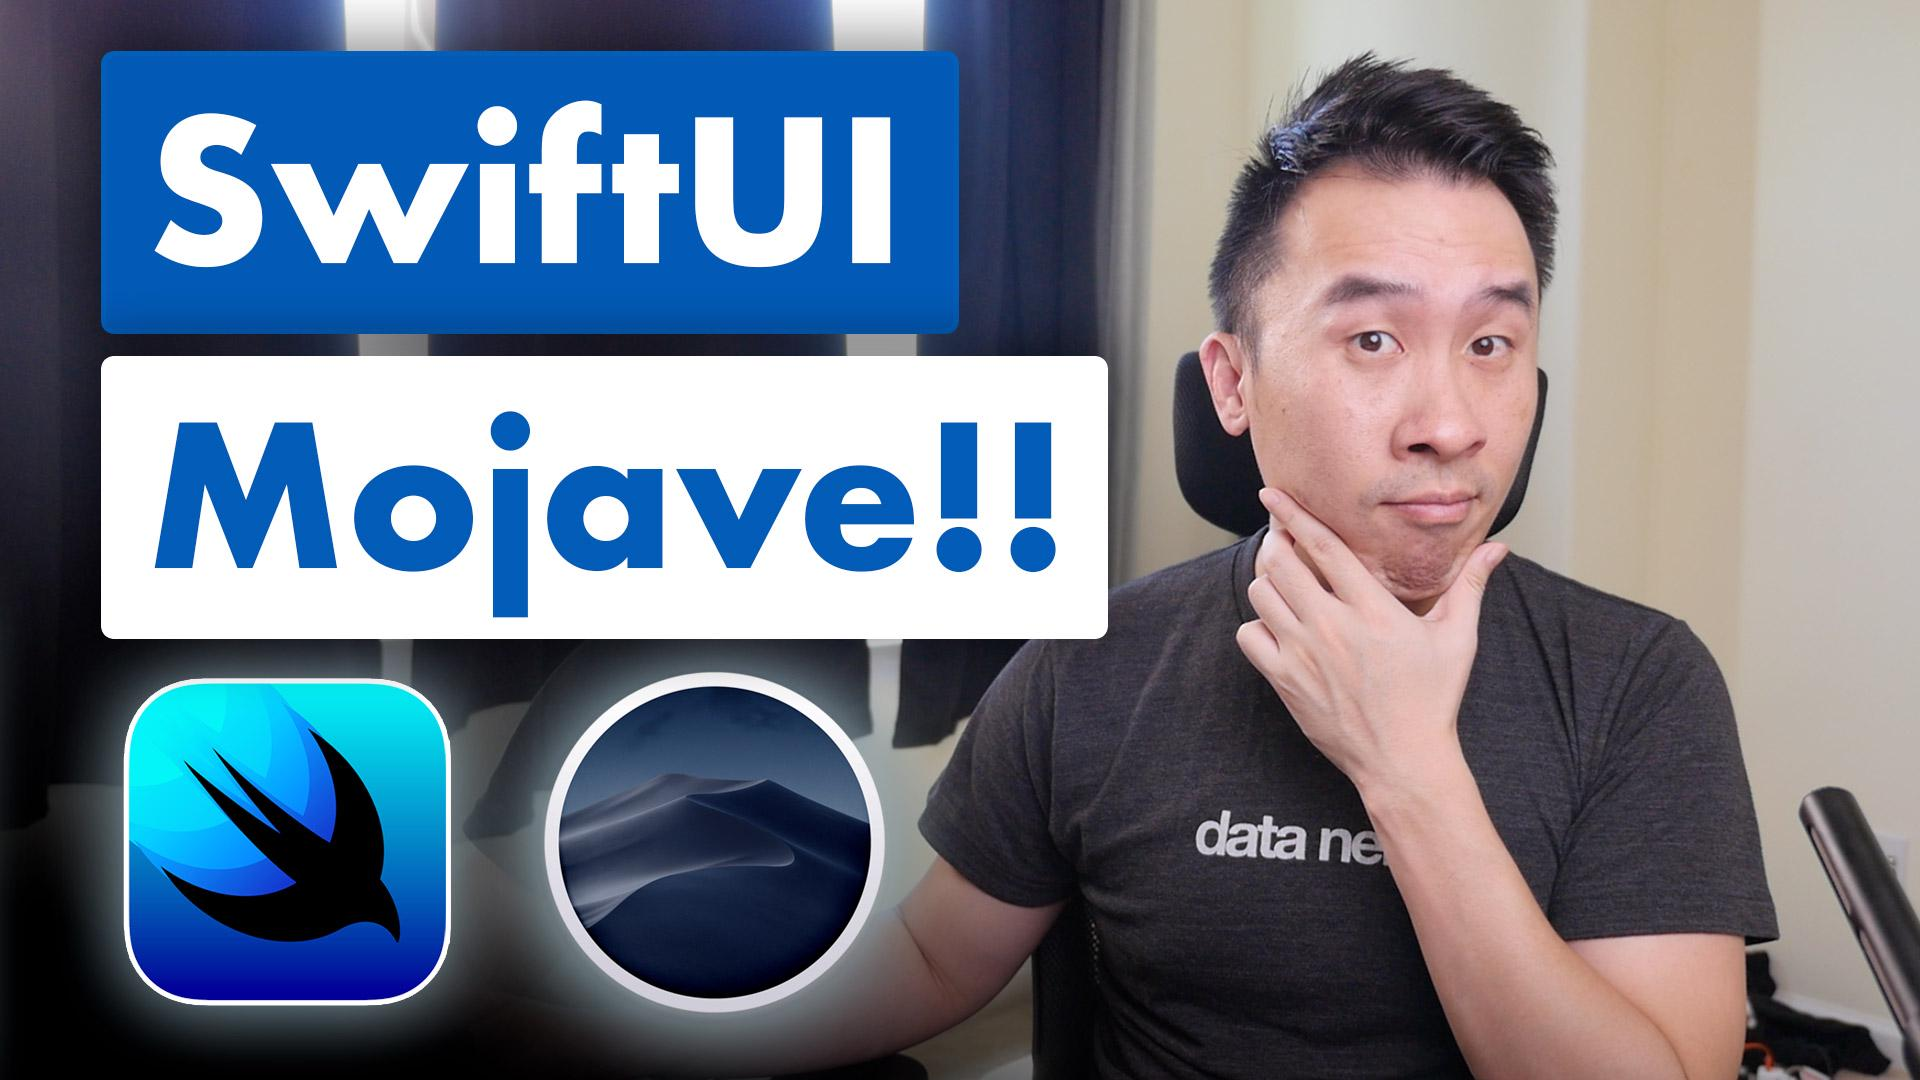 How to Run SwiftUI on Mojave with Playgrounds and Sample Code | Lets